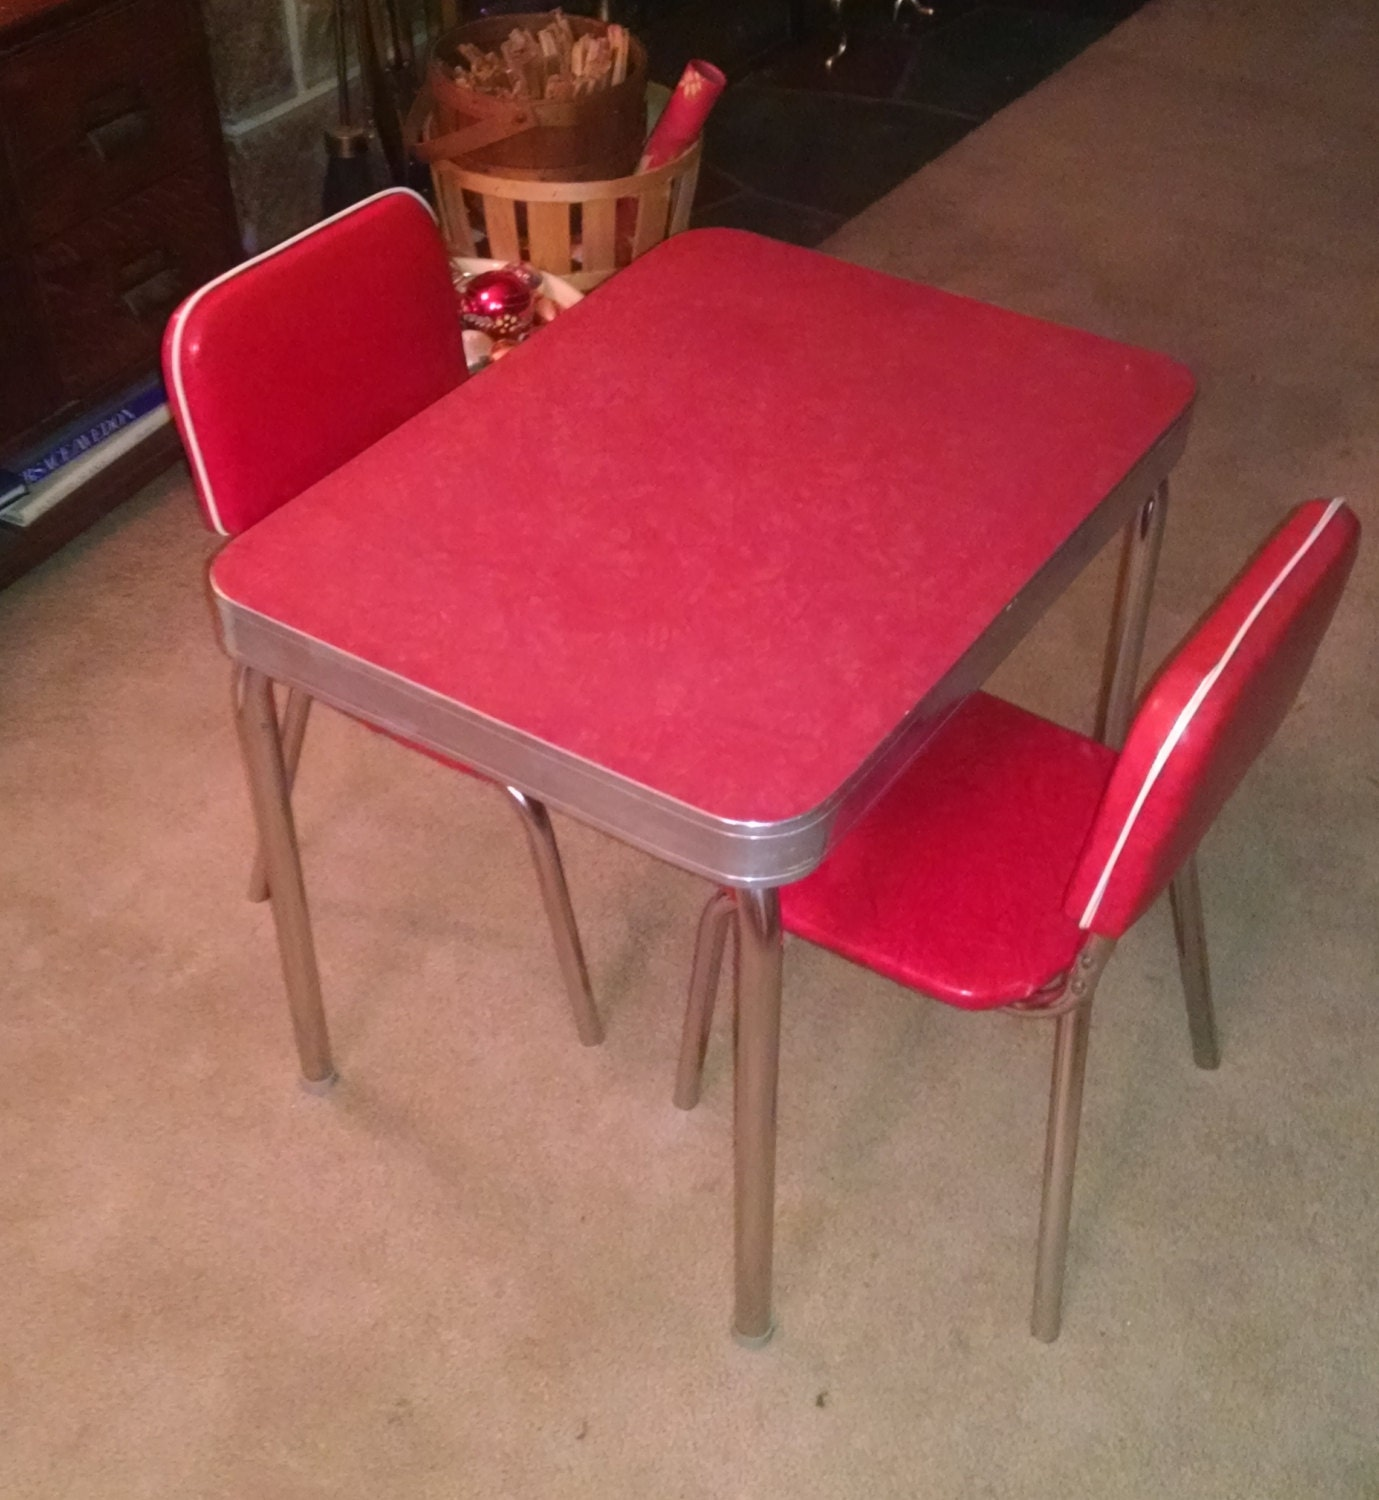 1950's CHILD SIZE Retro Vintage Red Formica Kitchen Table